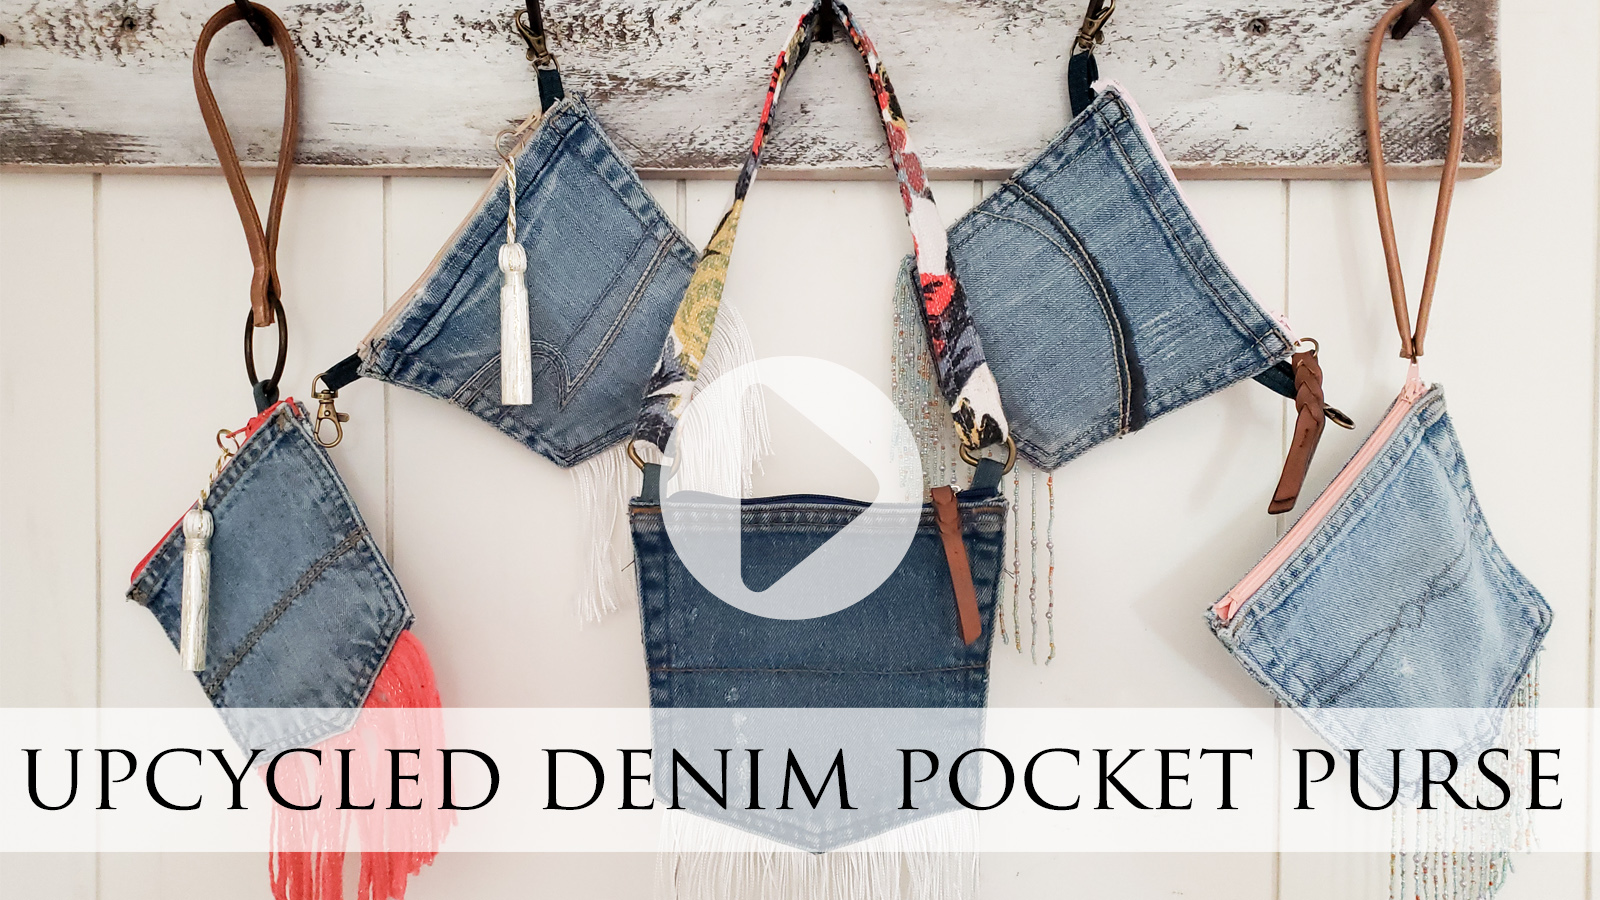 Upcycled Denim Pocket Purse Video Tutorial by Larissa of Prodigal Pieces | prodigalpieces.com